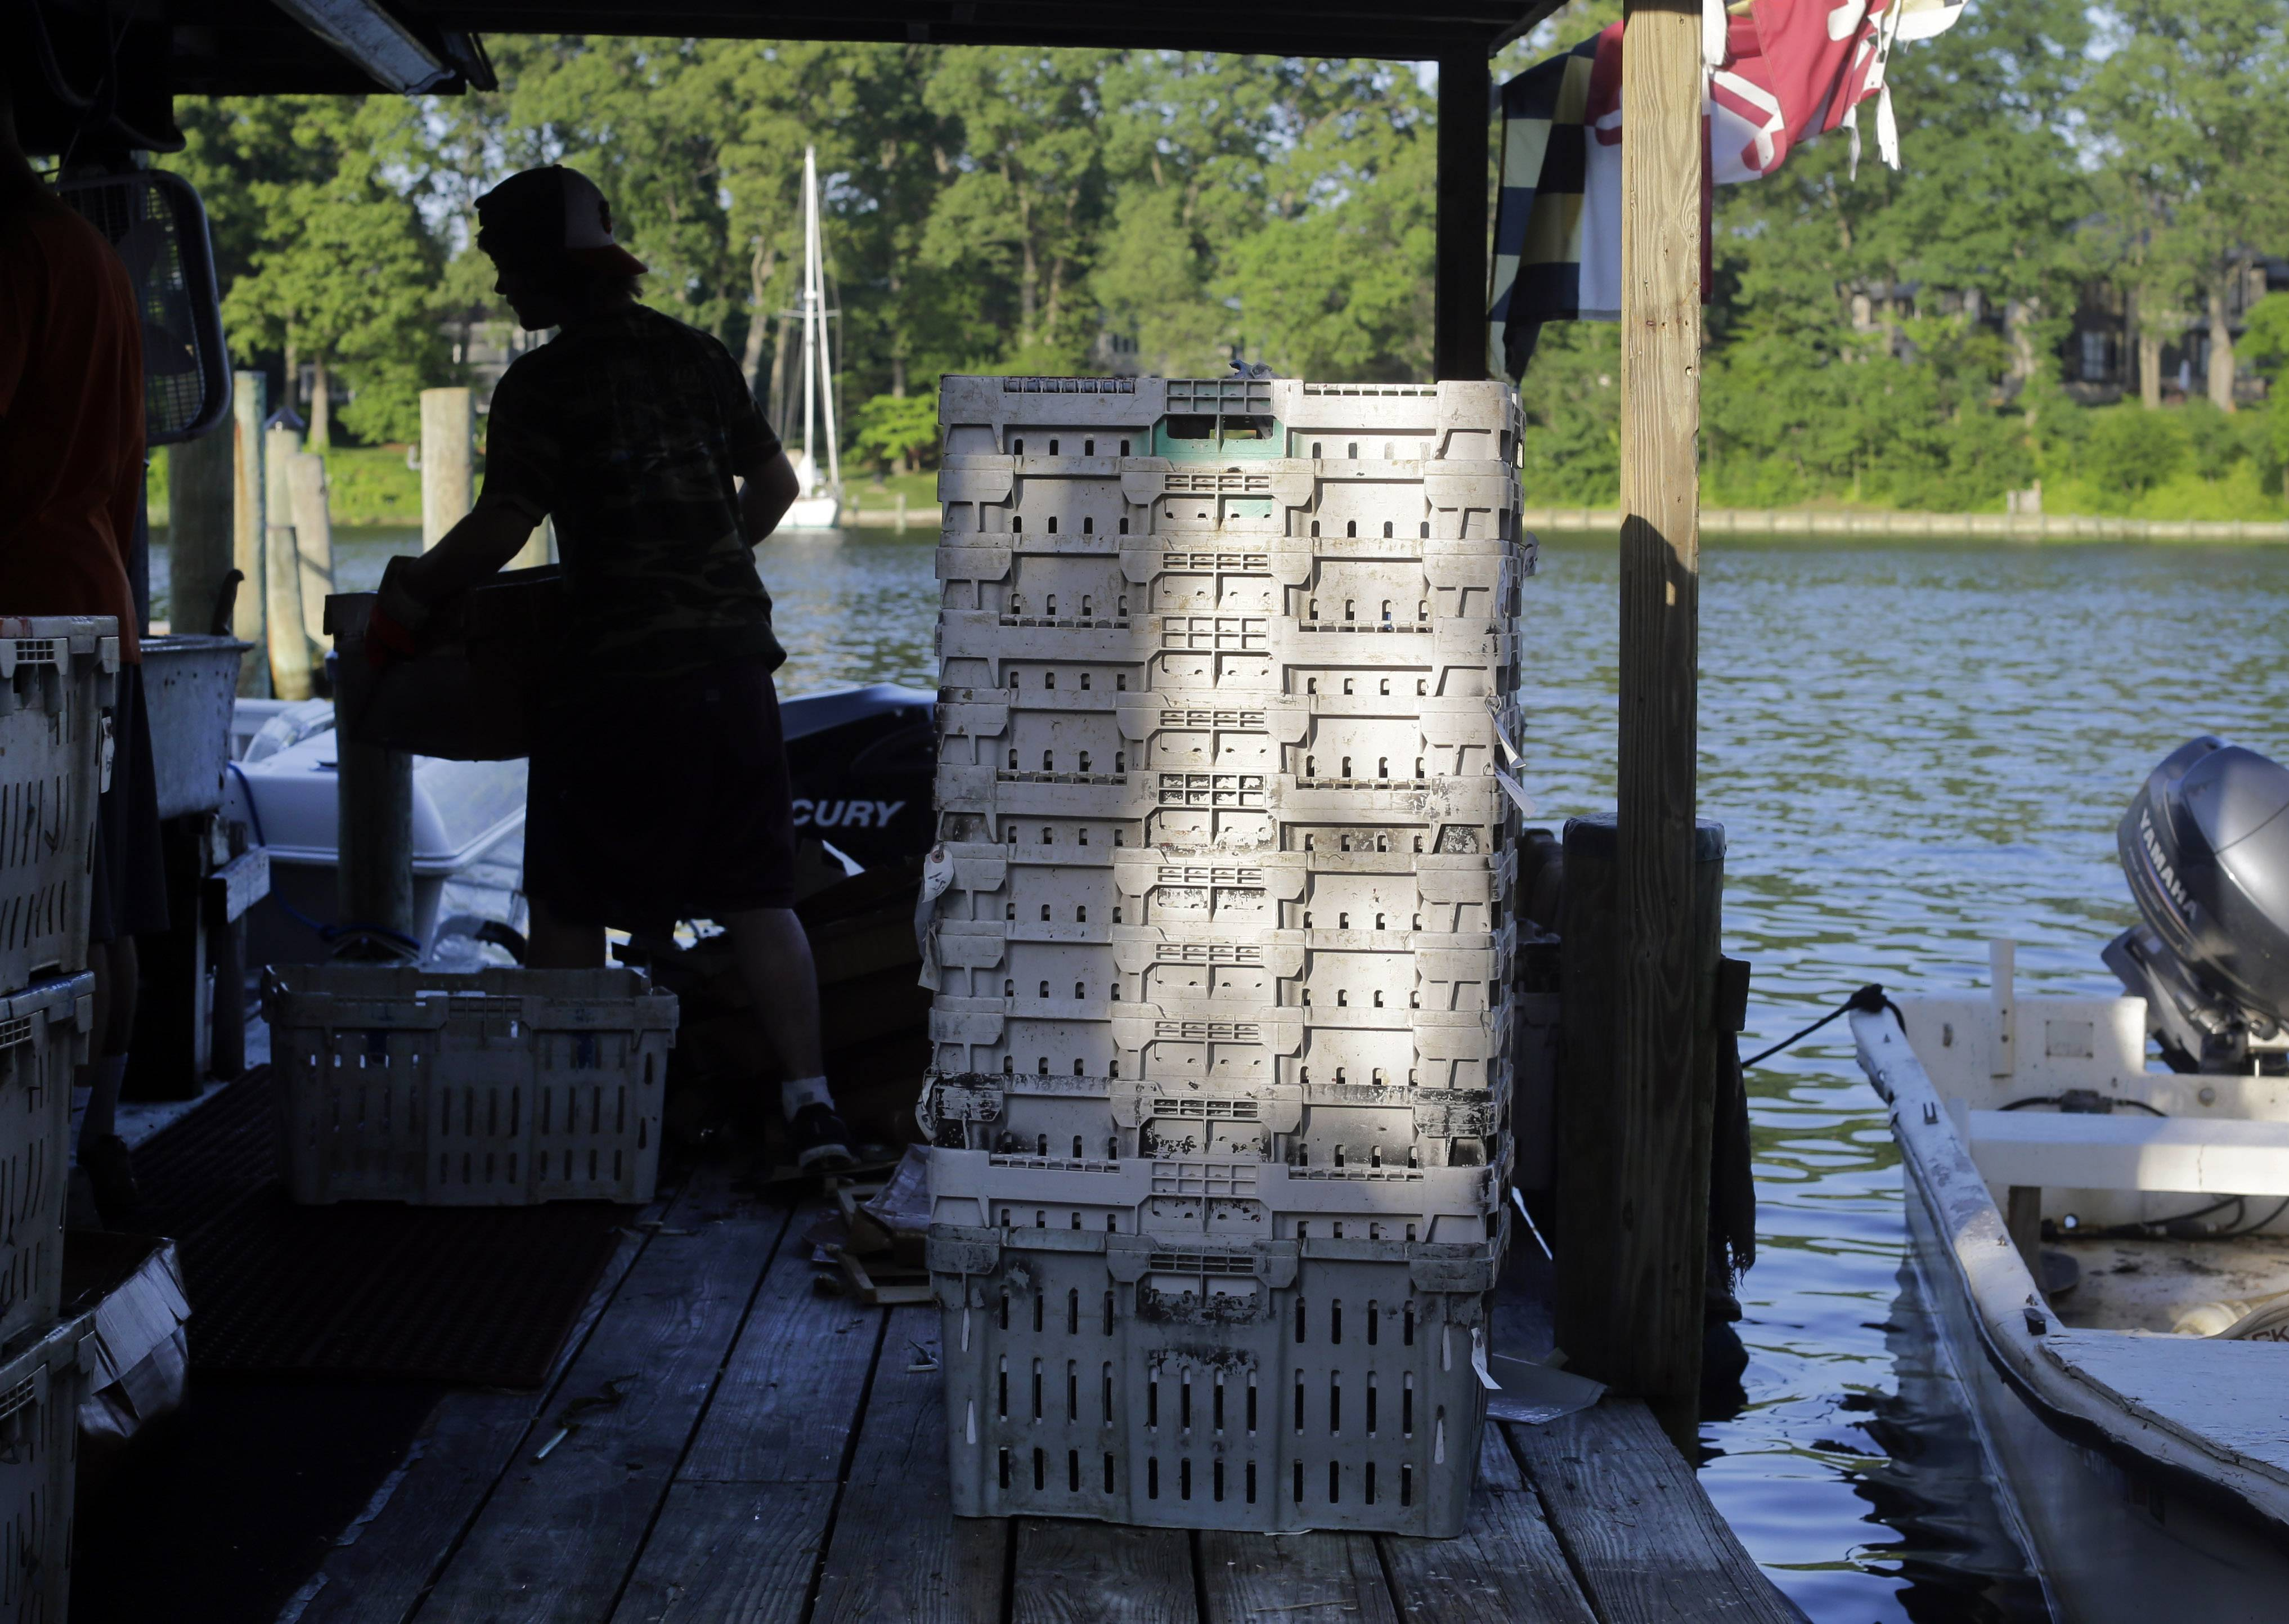 Empty crab baskets sit on a dock as employee Alex Lemmon, back left, carries a full crab basket at Jimmy Cantler's Riverside Inn in Annapolis, Md.